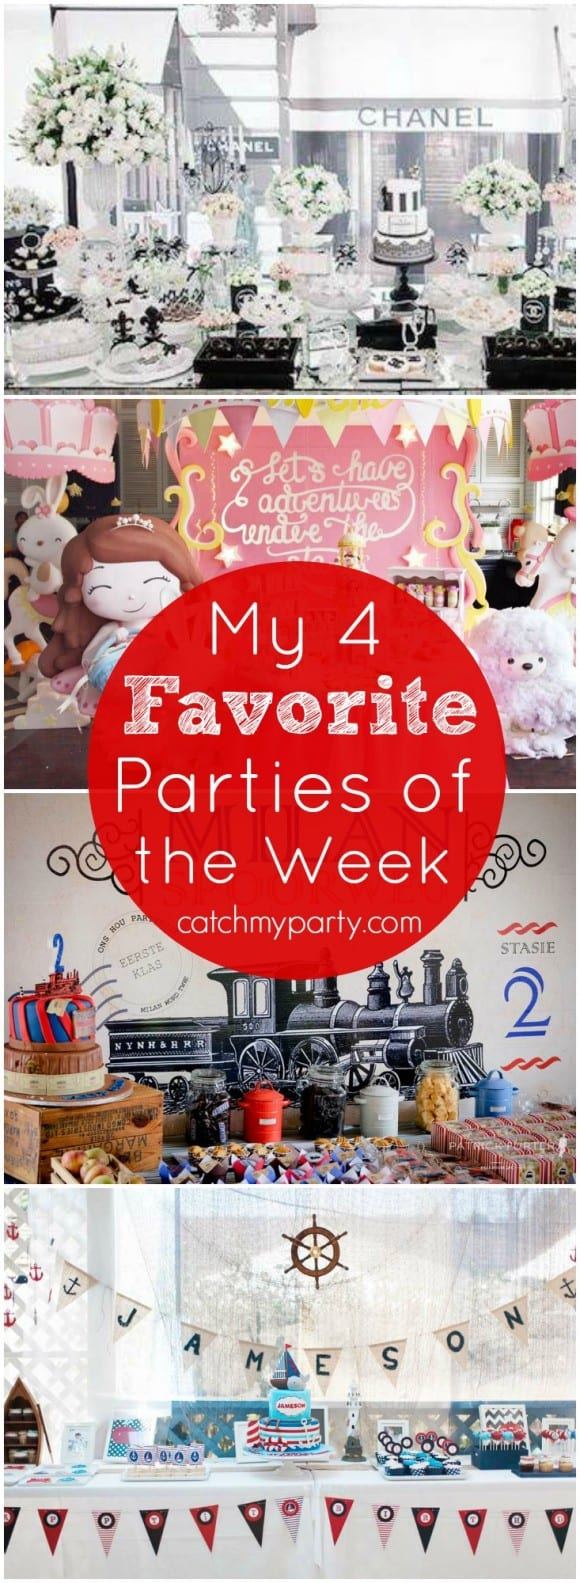 My favorite parties this week are a stylish Chanel 30 birthday, a pink and gold star party, a vintage train party, and a nautical party!